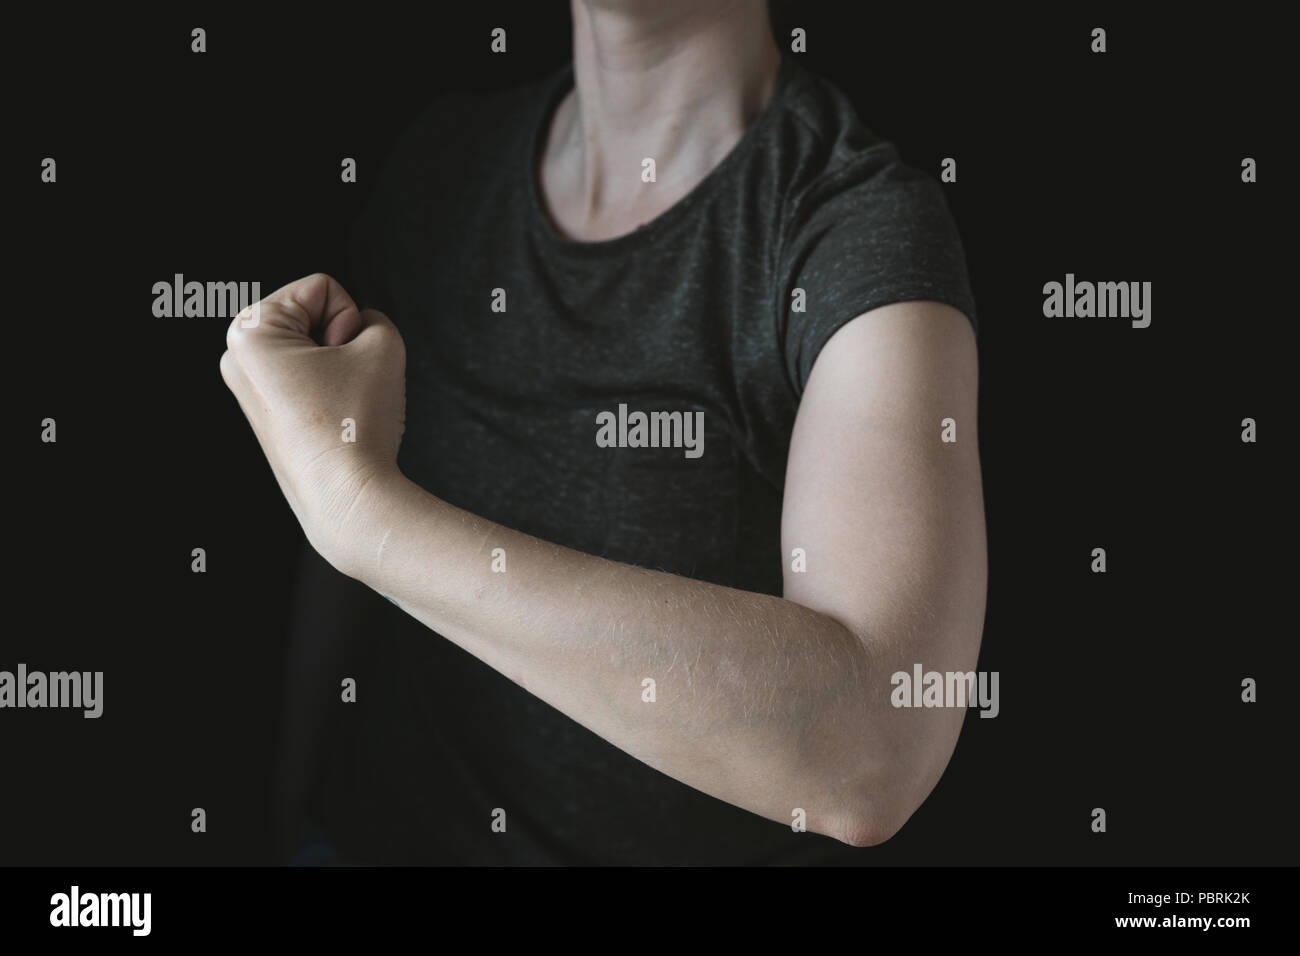 Symbolic picture, power woman, feminism, woman with tense arm muscles, black background, studio shot - Stock Image